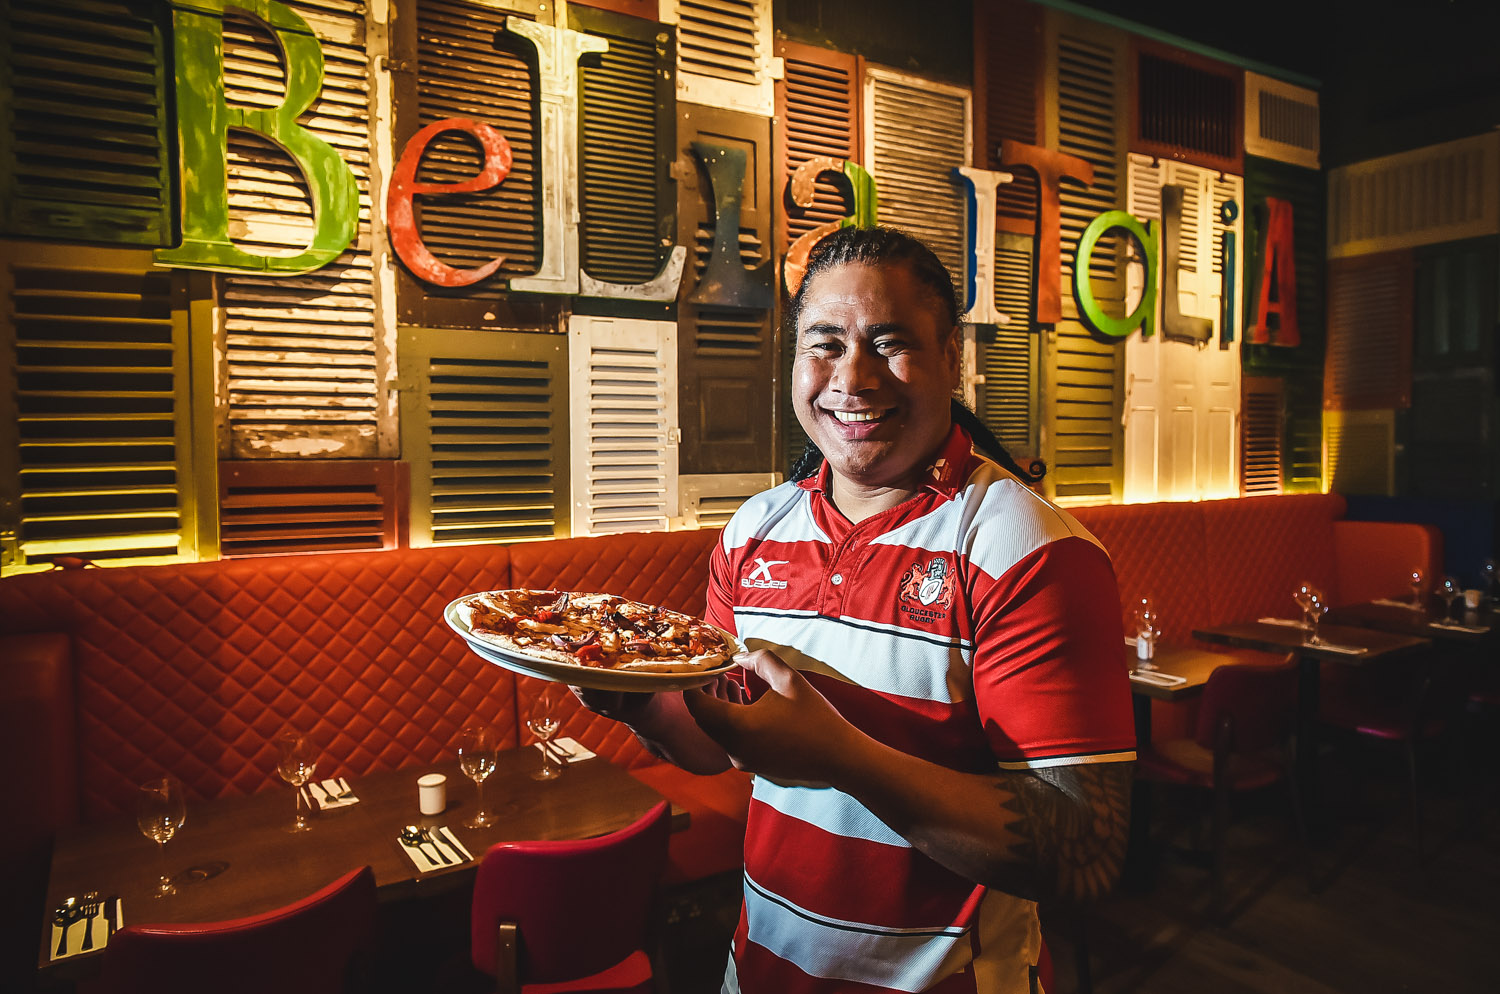 corporate publicity shot of gloucester rugby player in Bella Italia